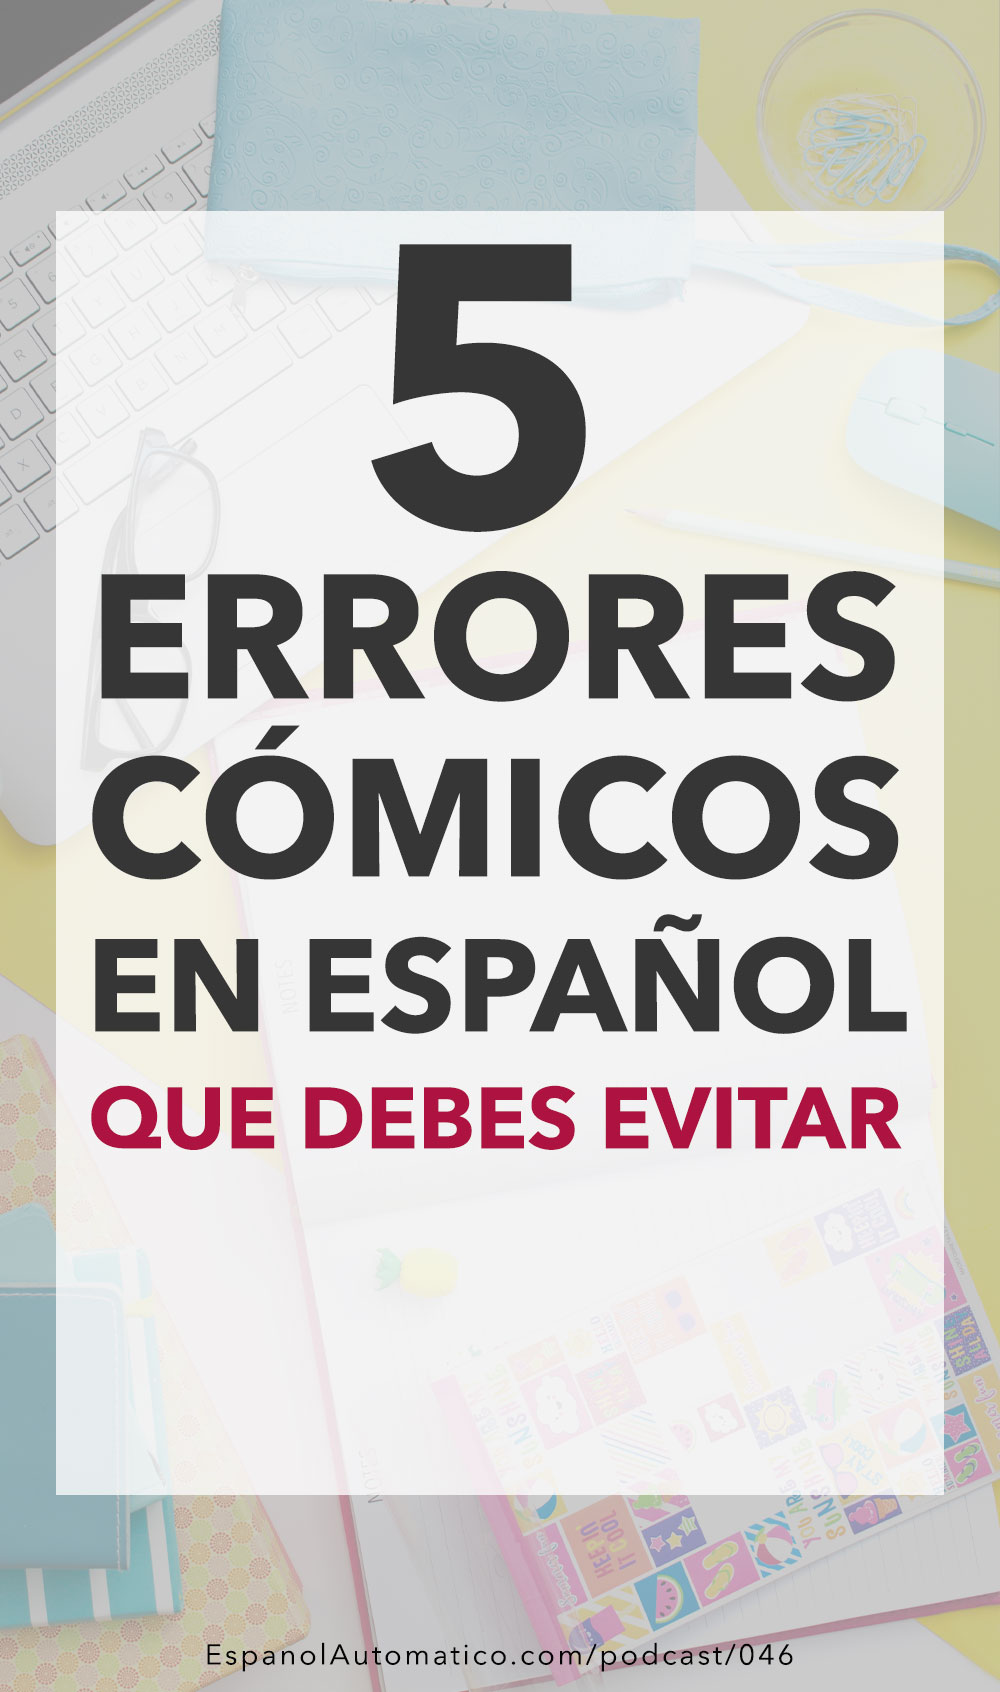 Aprende español: 5 errores cómicos en español que debes evitar este verano [Podcast 046] Learn Spanish in fun and easy way with our award-winning podcast: http://espanolautomatico.com/podcast/046 REPIN for later